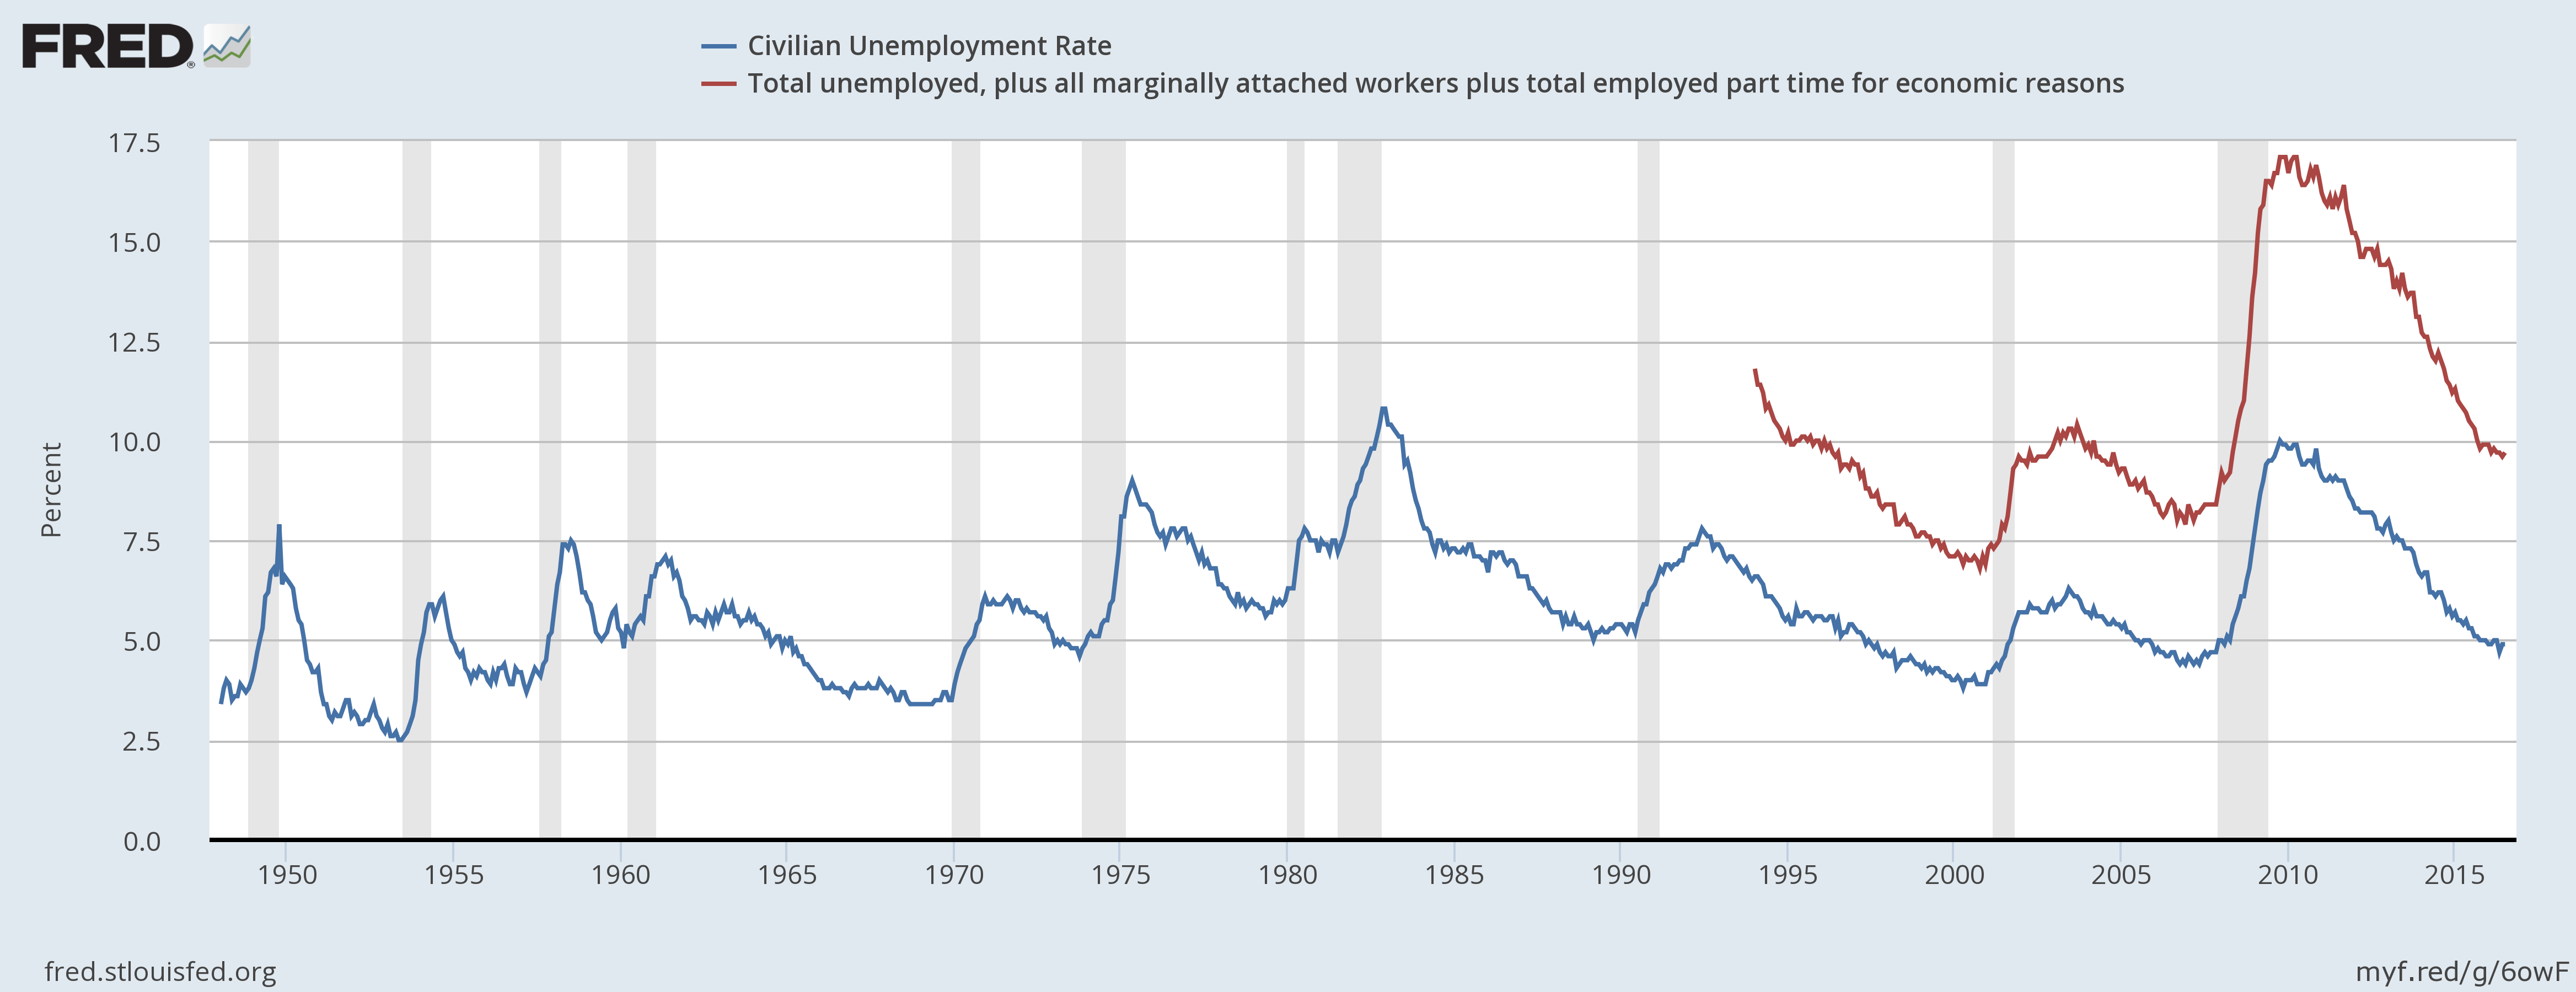 communism occasional links commentary today of course the rate of unemployment is once again contested as conspiracy theorists like donald trump argue the official unemployment numbers out